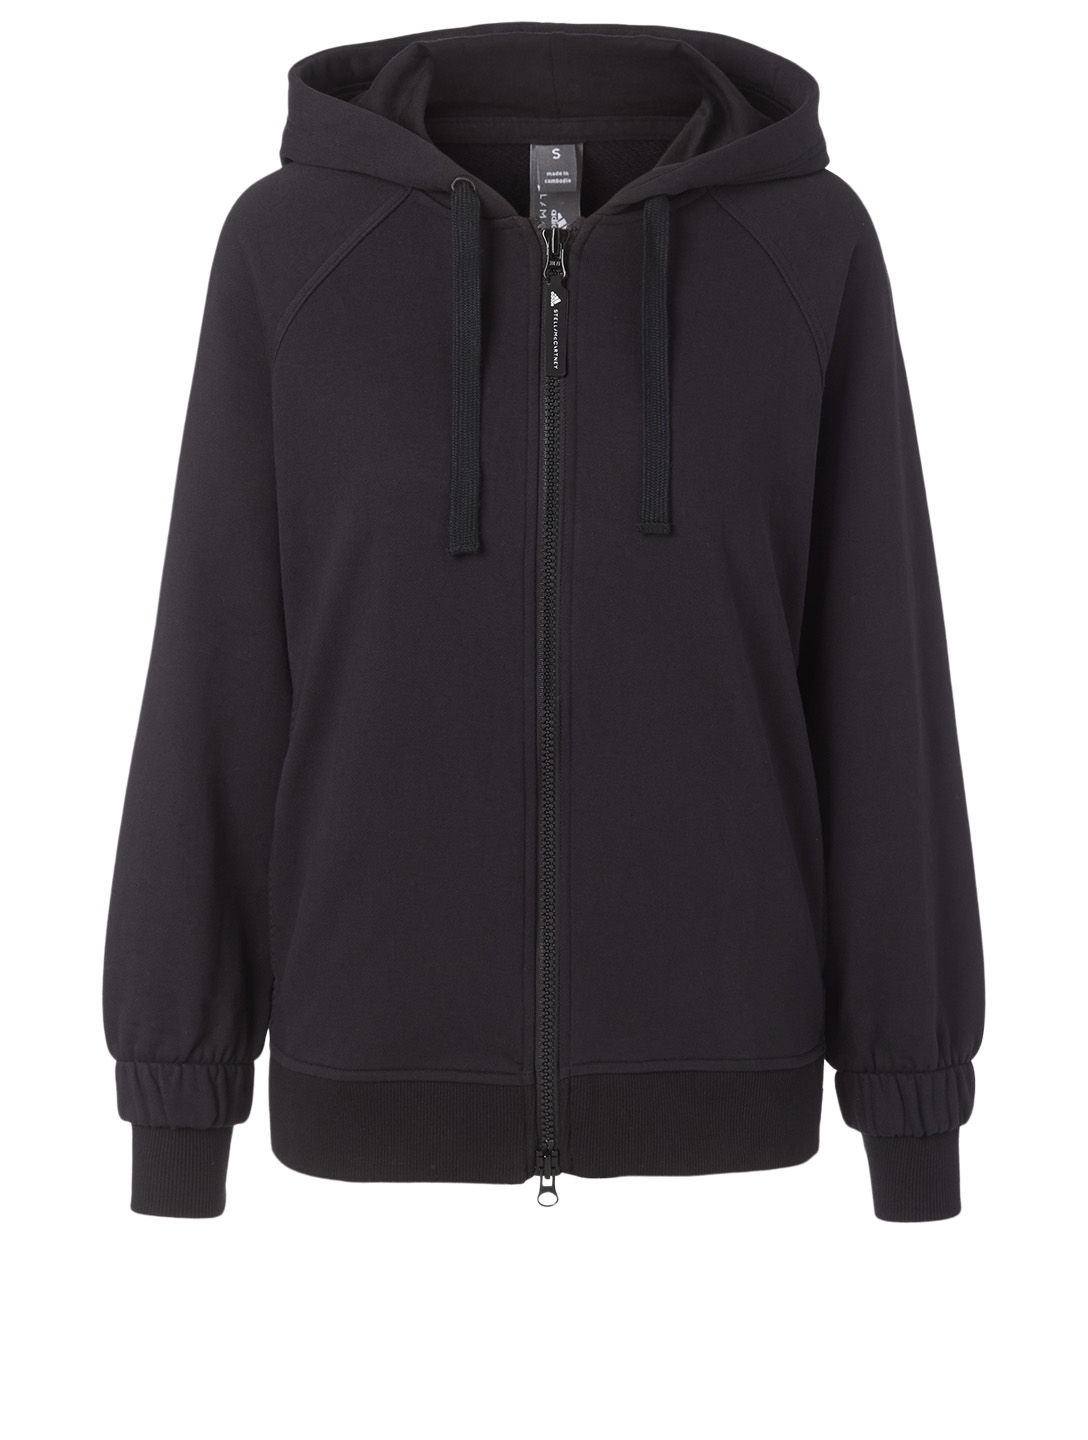 ADIDAS BY STELLA MCCARTNEY Essentials Zip-Up Hoodie Women's Black